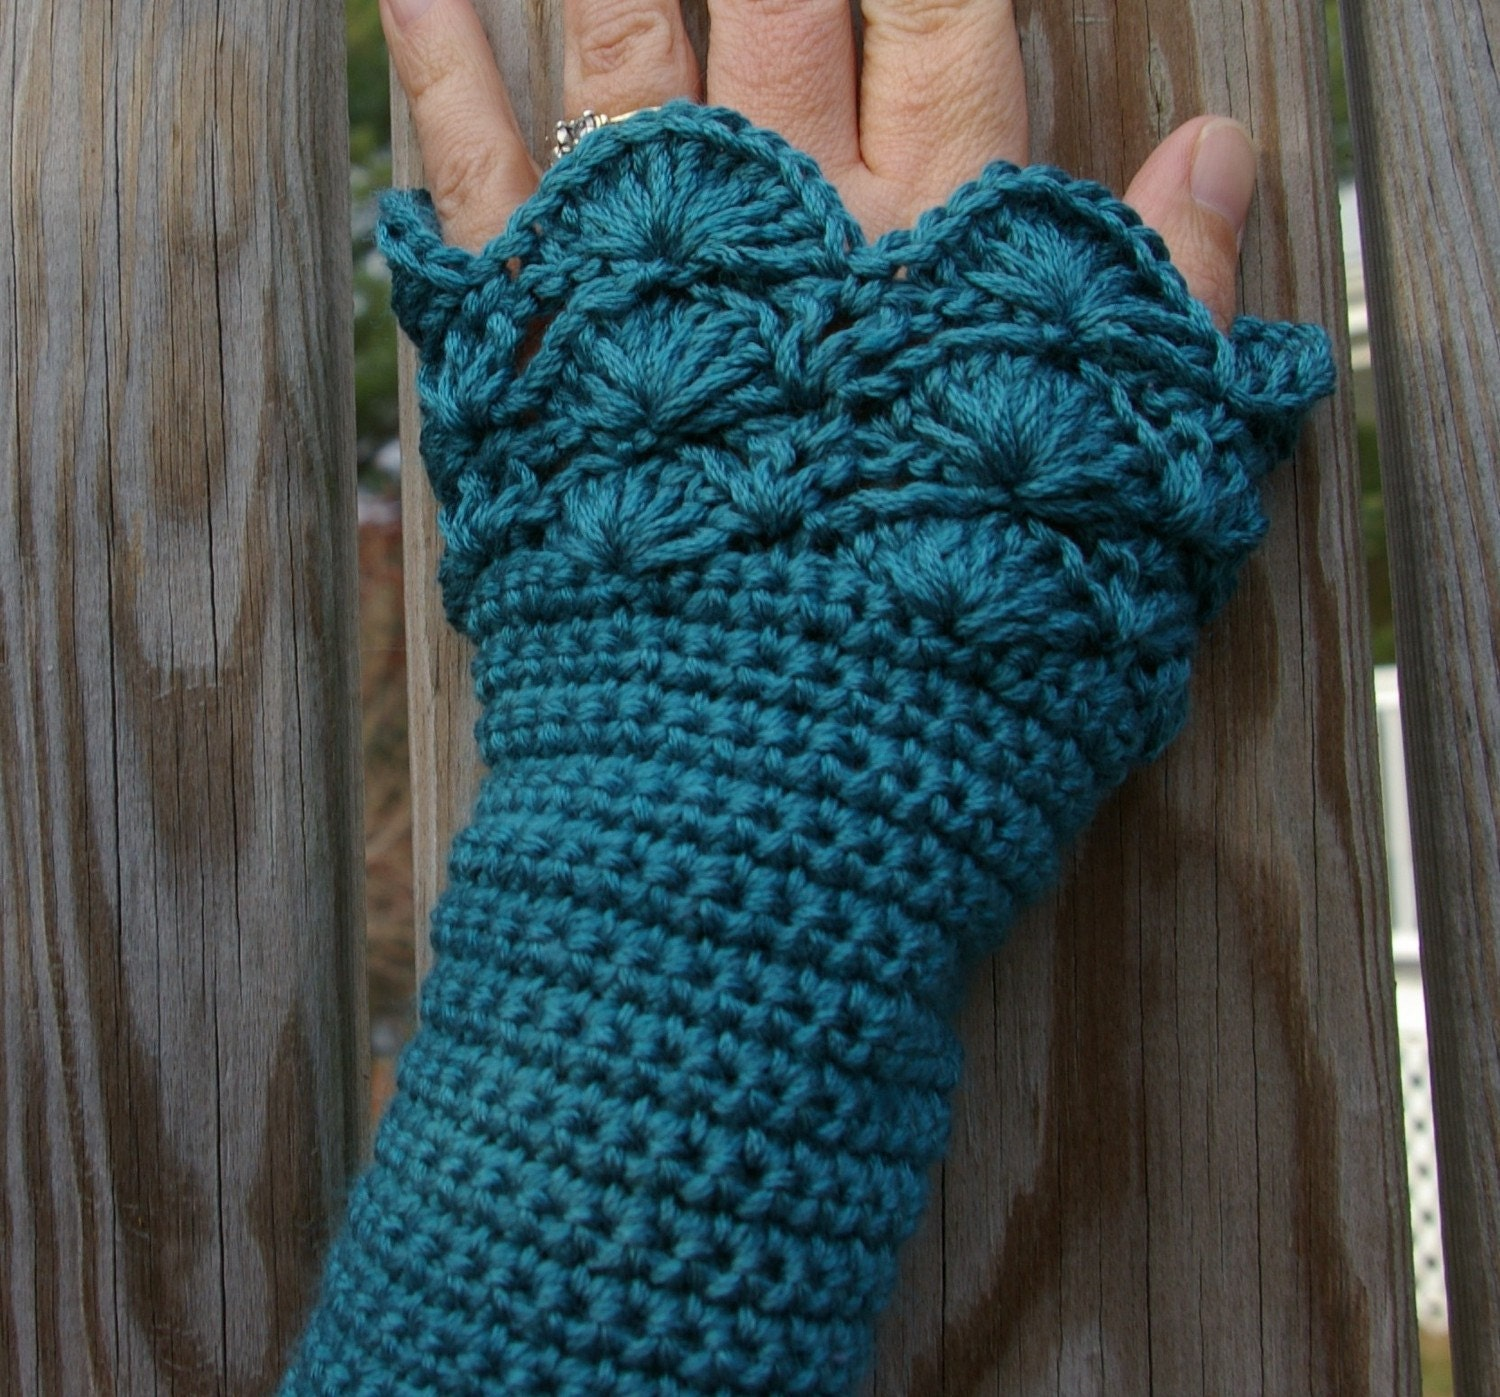 Crocheting With Arms : Crochet Arm Warmers Fingerless Gloves in Teal by CandacesCloset